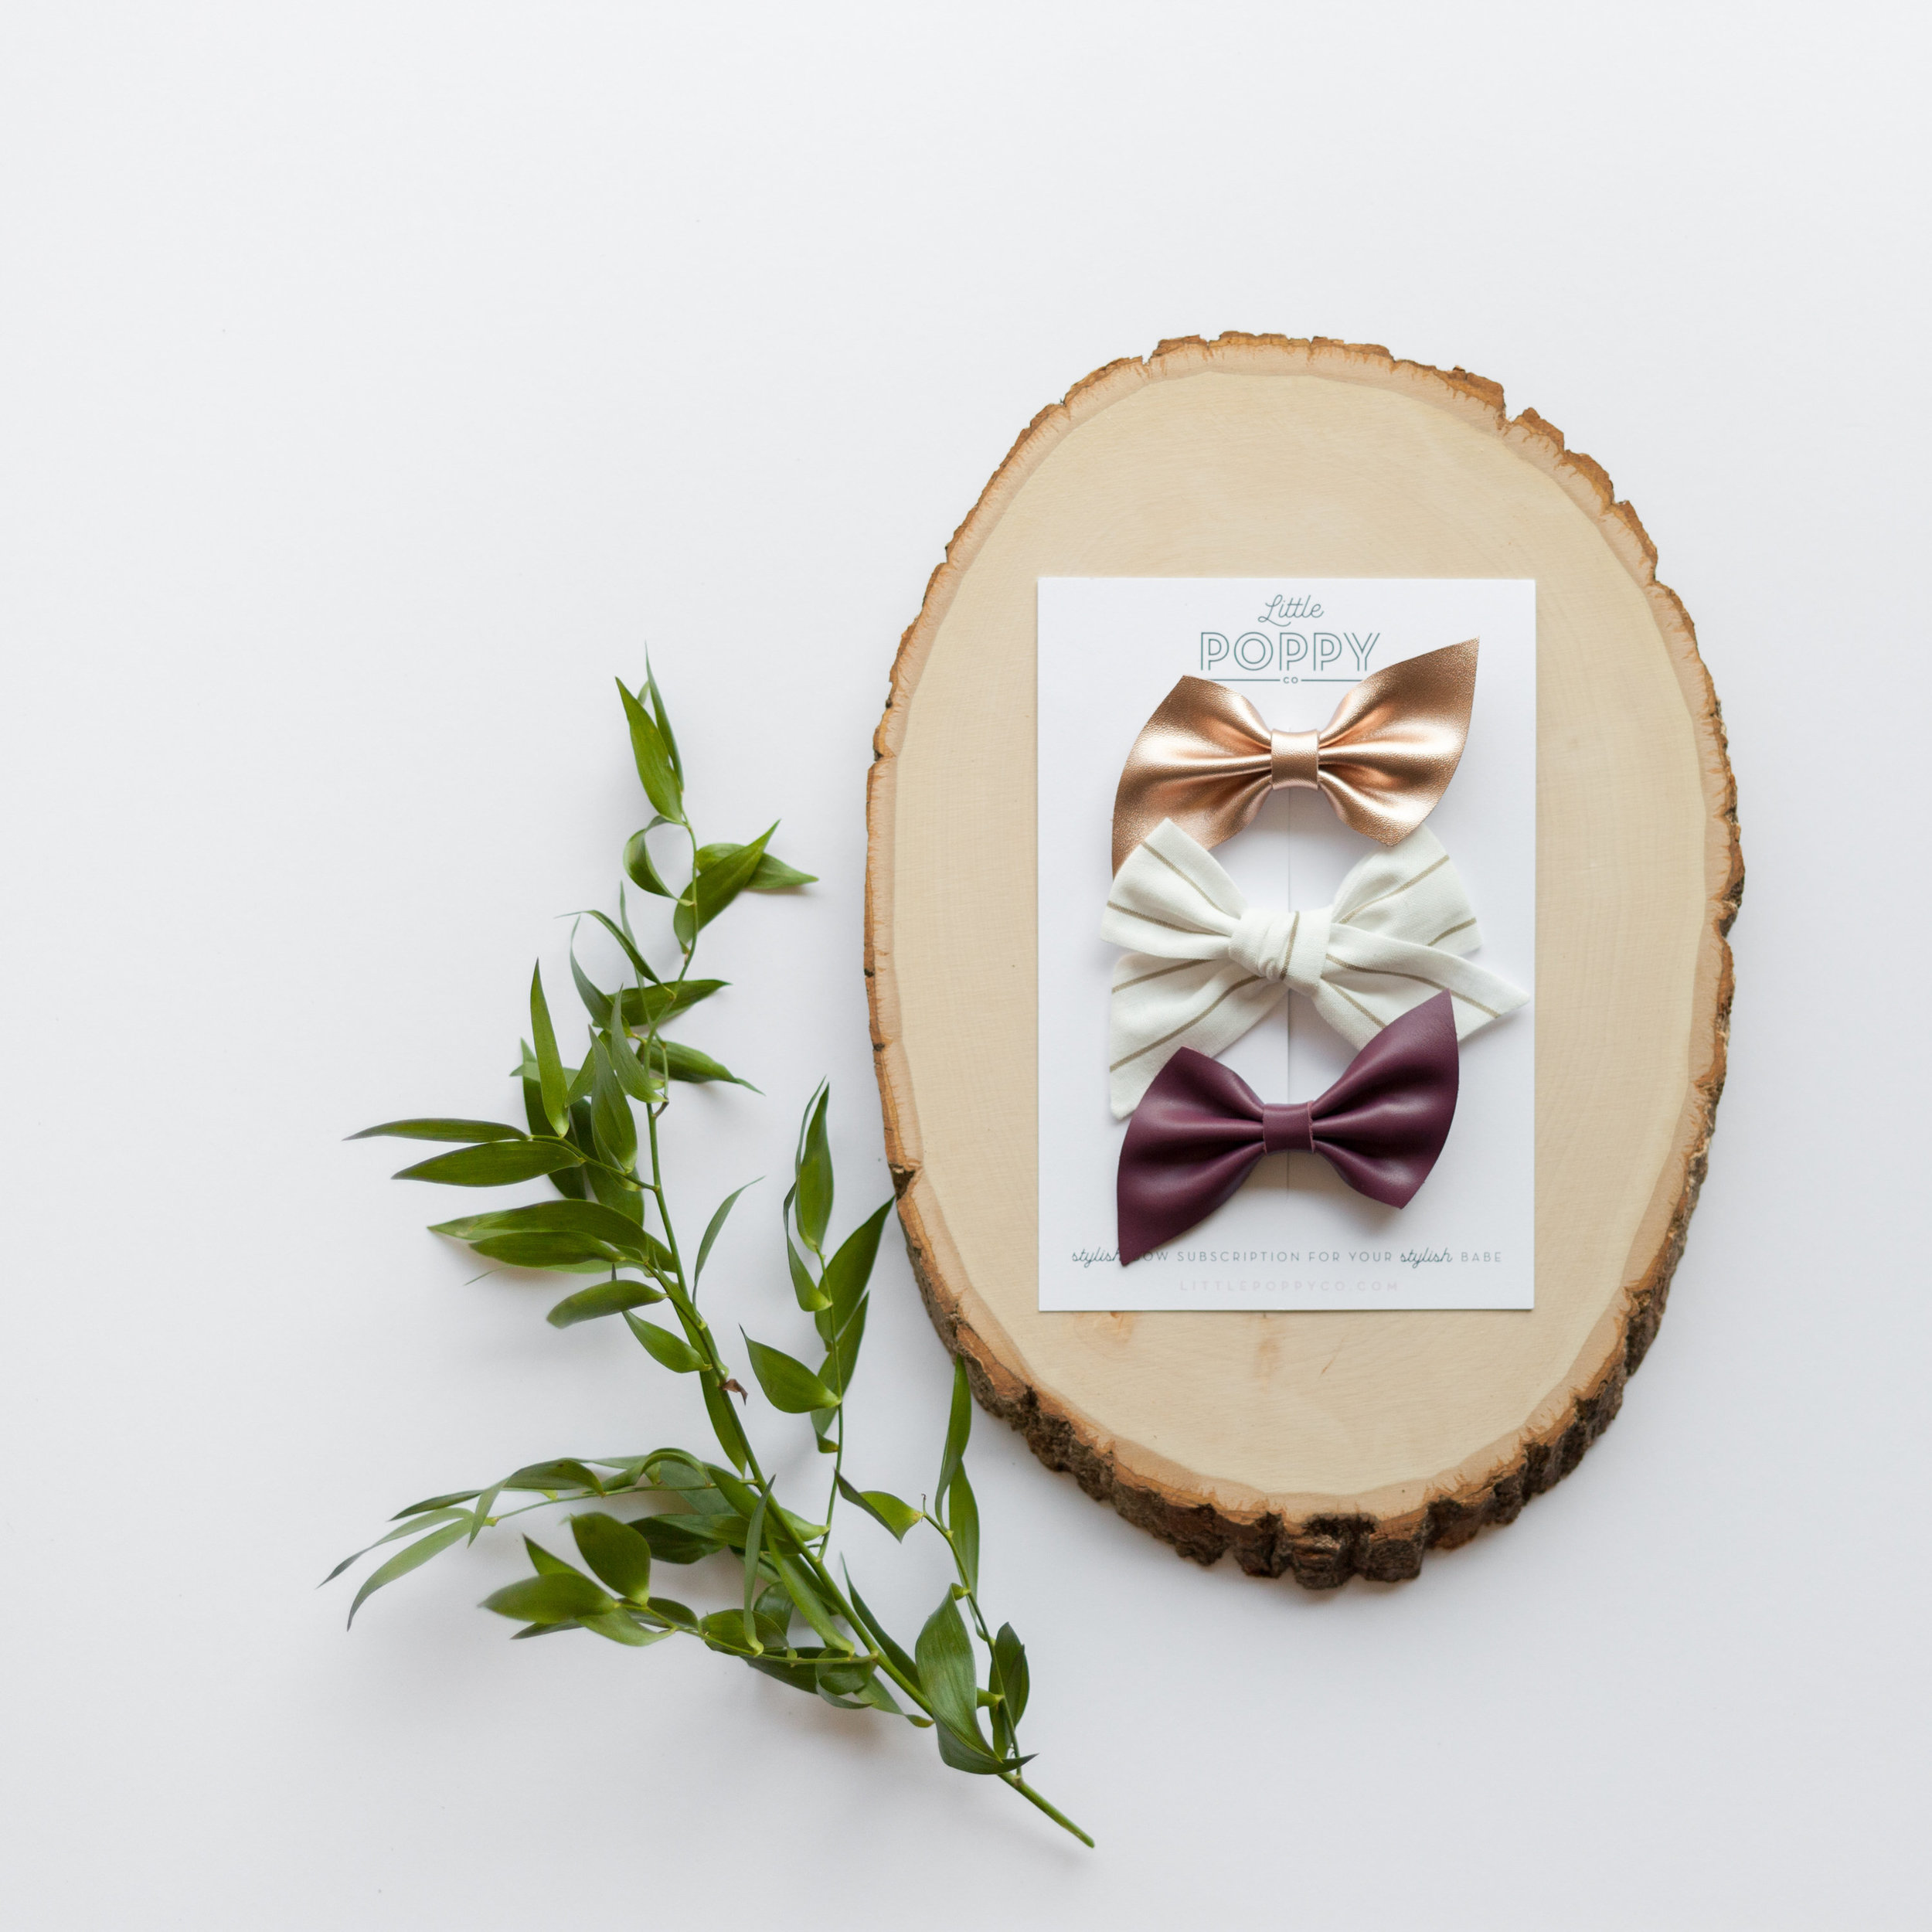 Here's another look at September bows and if you haven't already subscribed you CAN'T miss out on this month's bows! Rose gold and plum genuine leather with a cornstalk stripe linen poppy are too perfect!Subscribe here: https://littlepoppyco.com/subscribe_start